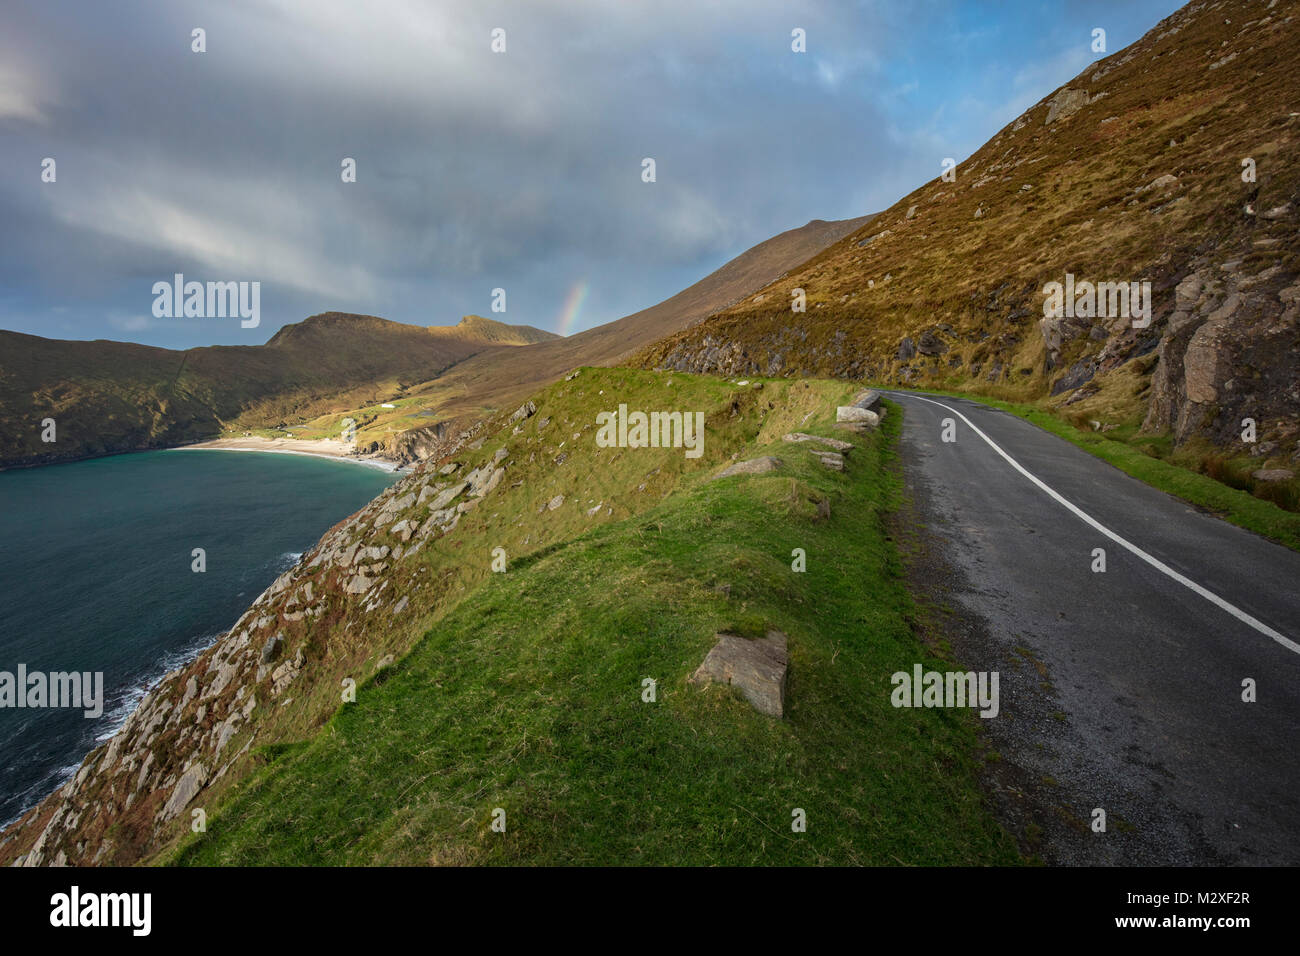 The road to Keem Bay on the Wild Atlantic Way, Achill Island, County Mayo, Ireland. - Stock Image